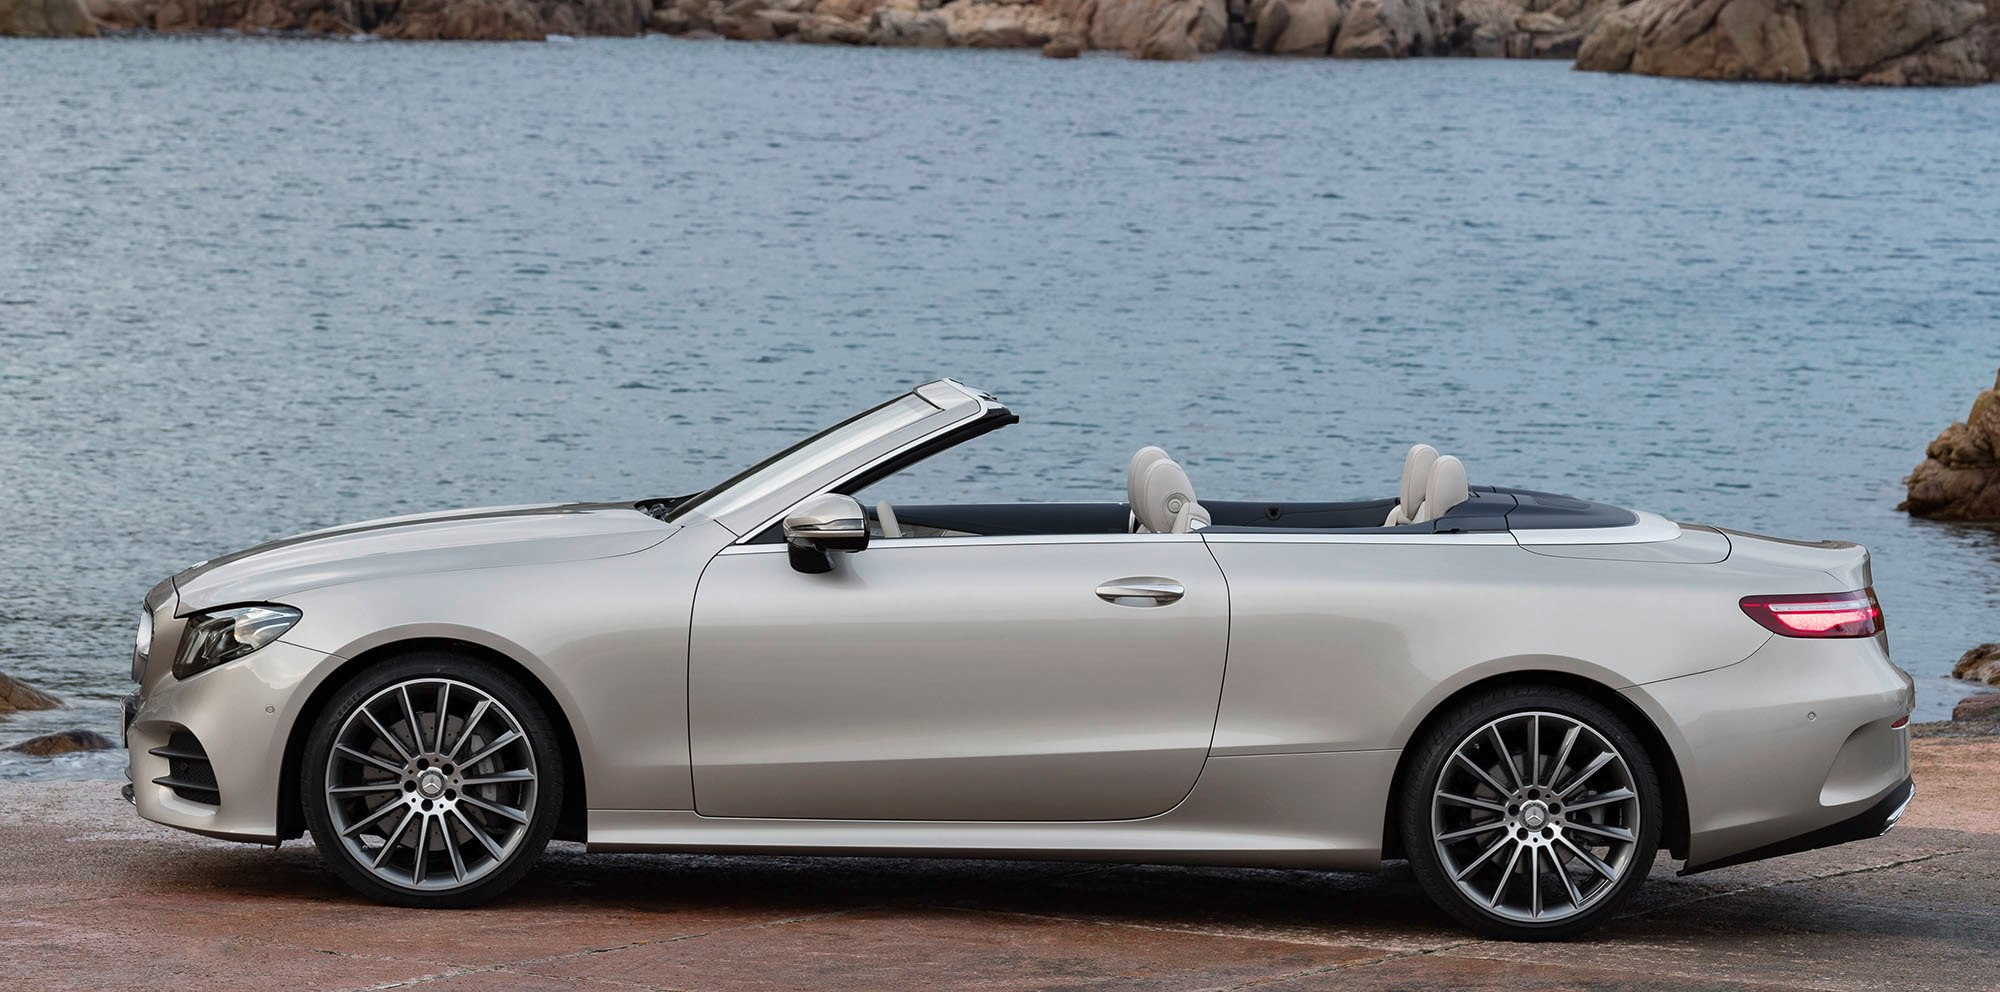 2017 mercedes benz e class cabriolet revealed photos caradvice. Black Bedroom Furniture Sets. Home Design Ideas